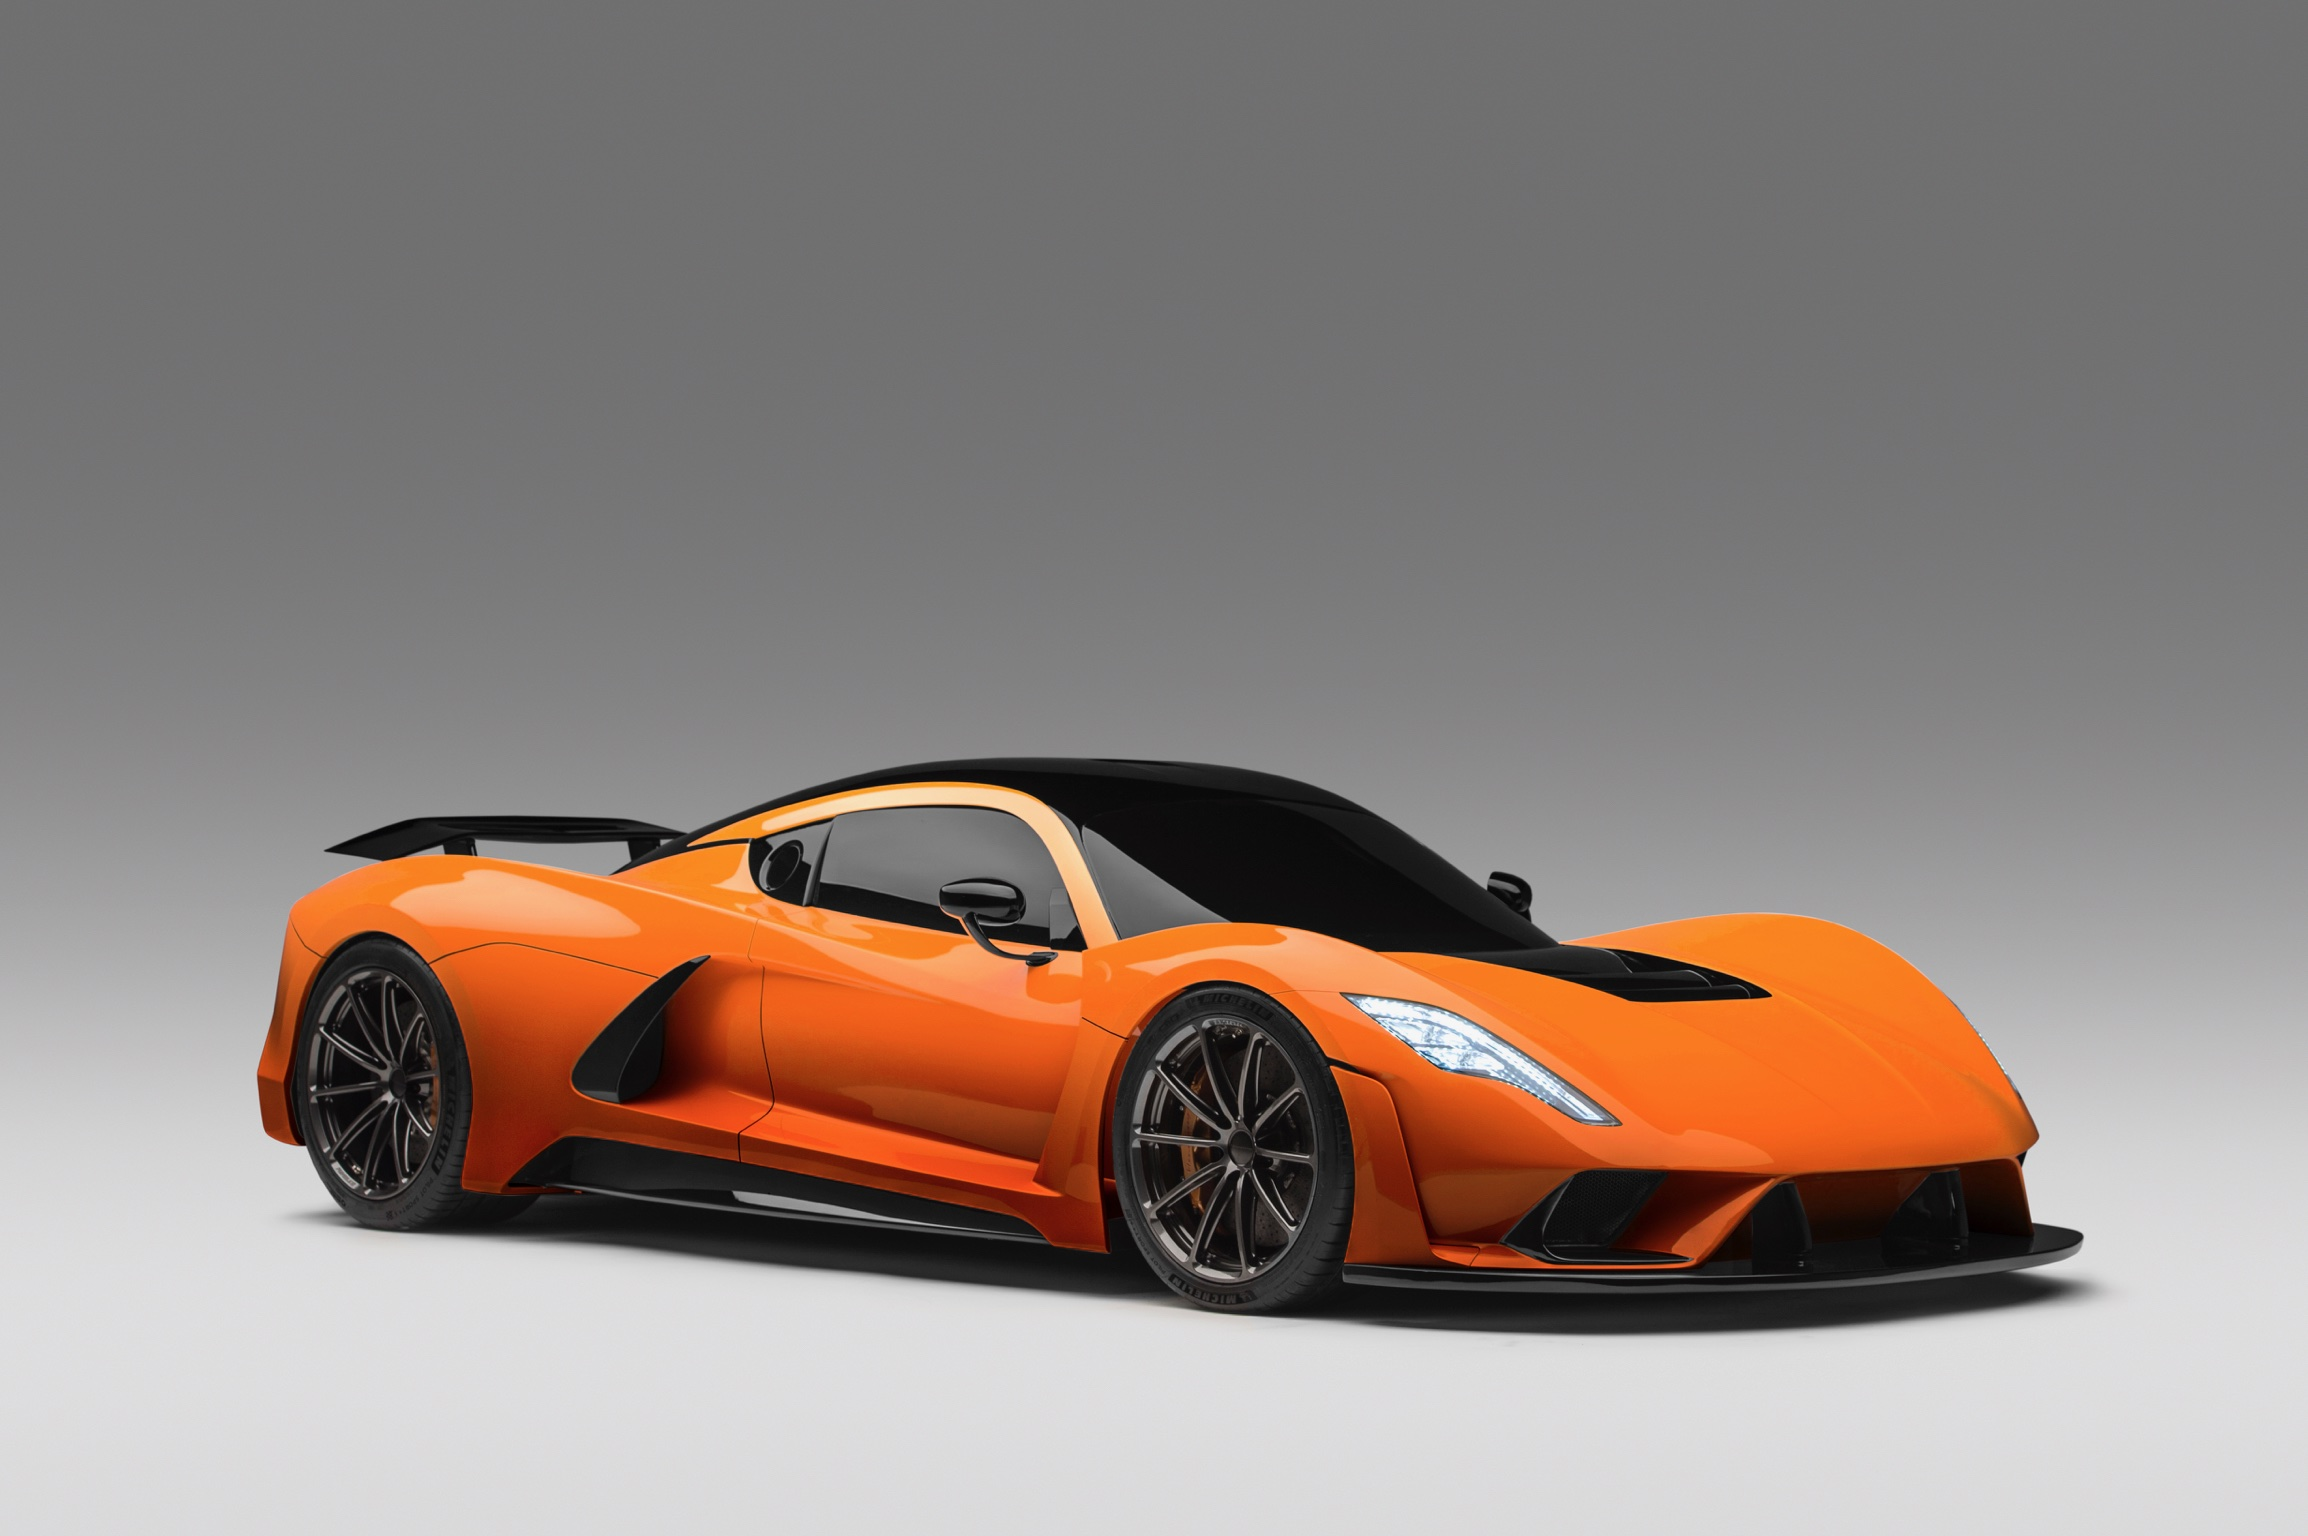 Hennessey Venom F5 in Orange Metallic